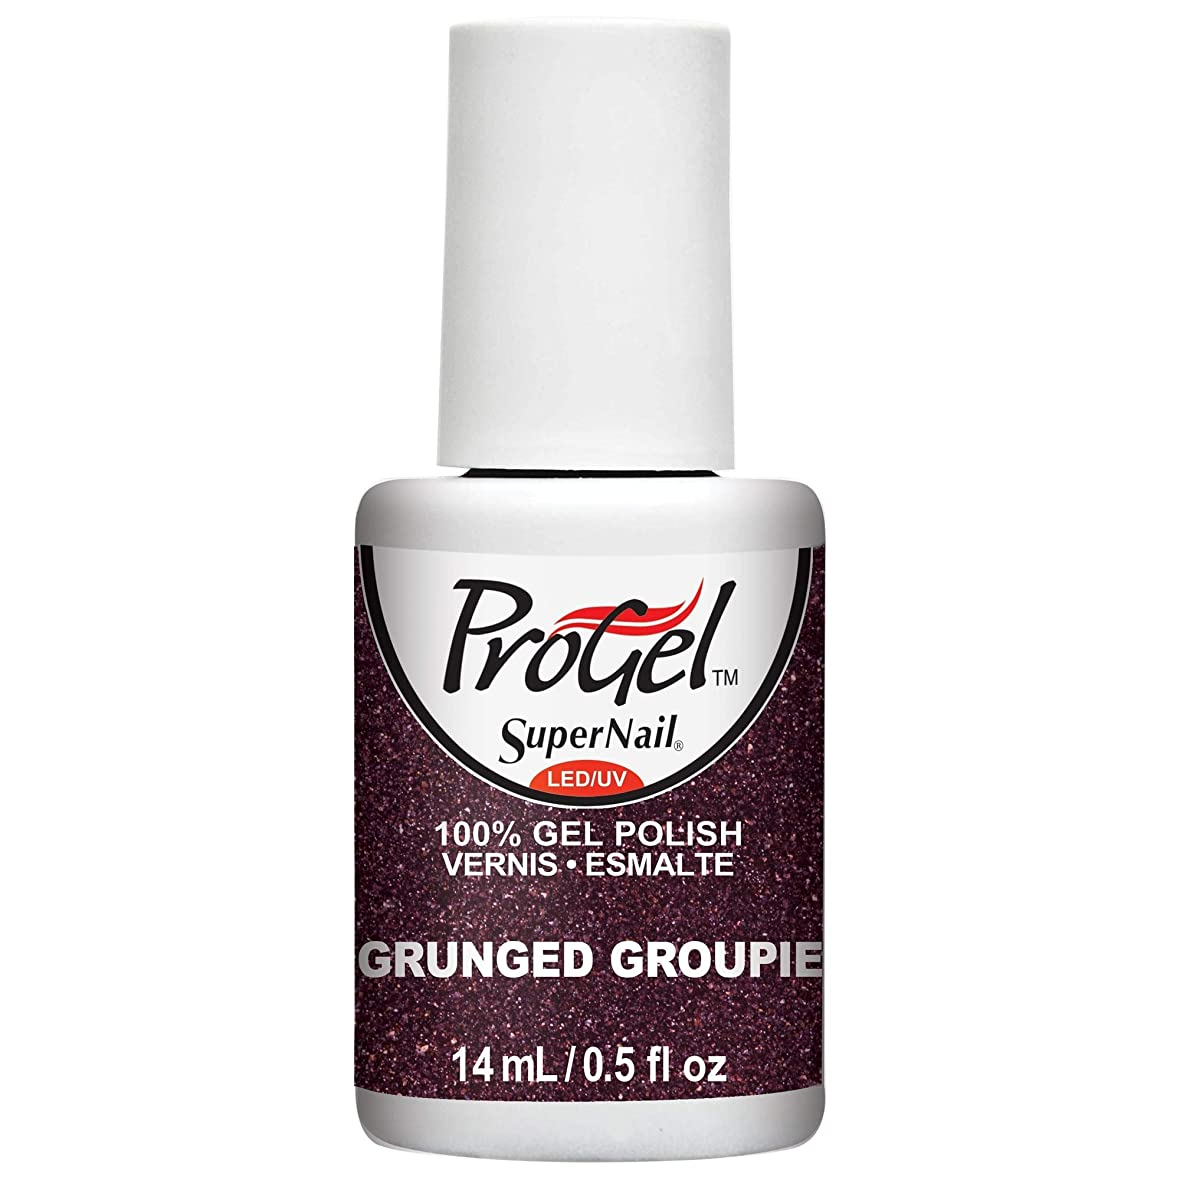 SuperNail ProGel Gel Polish - Grunged Groupie - 0.5oz/14ml